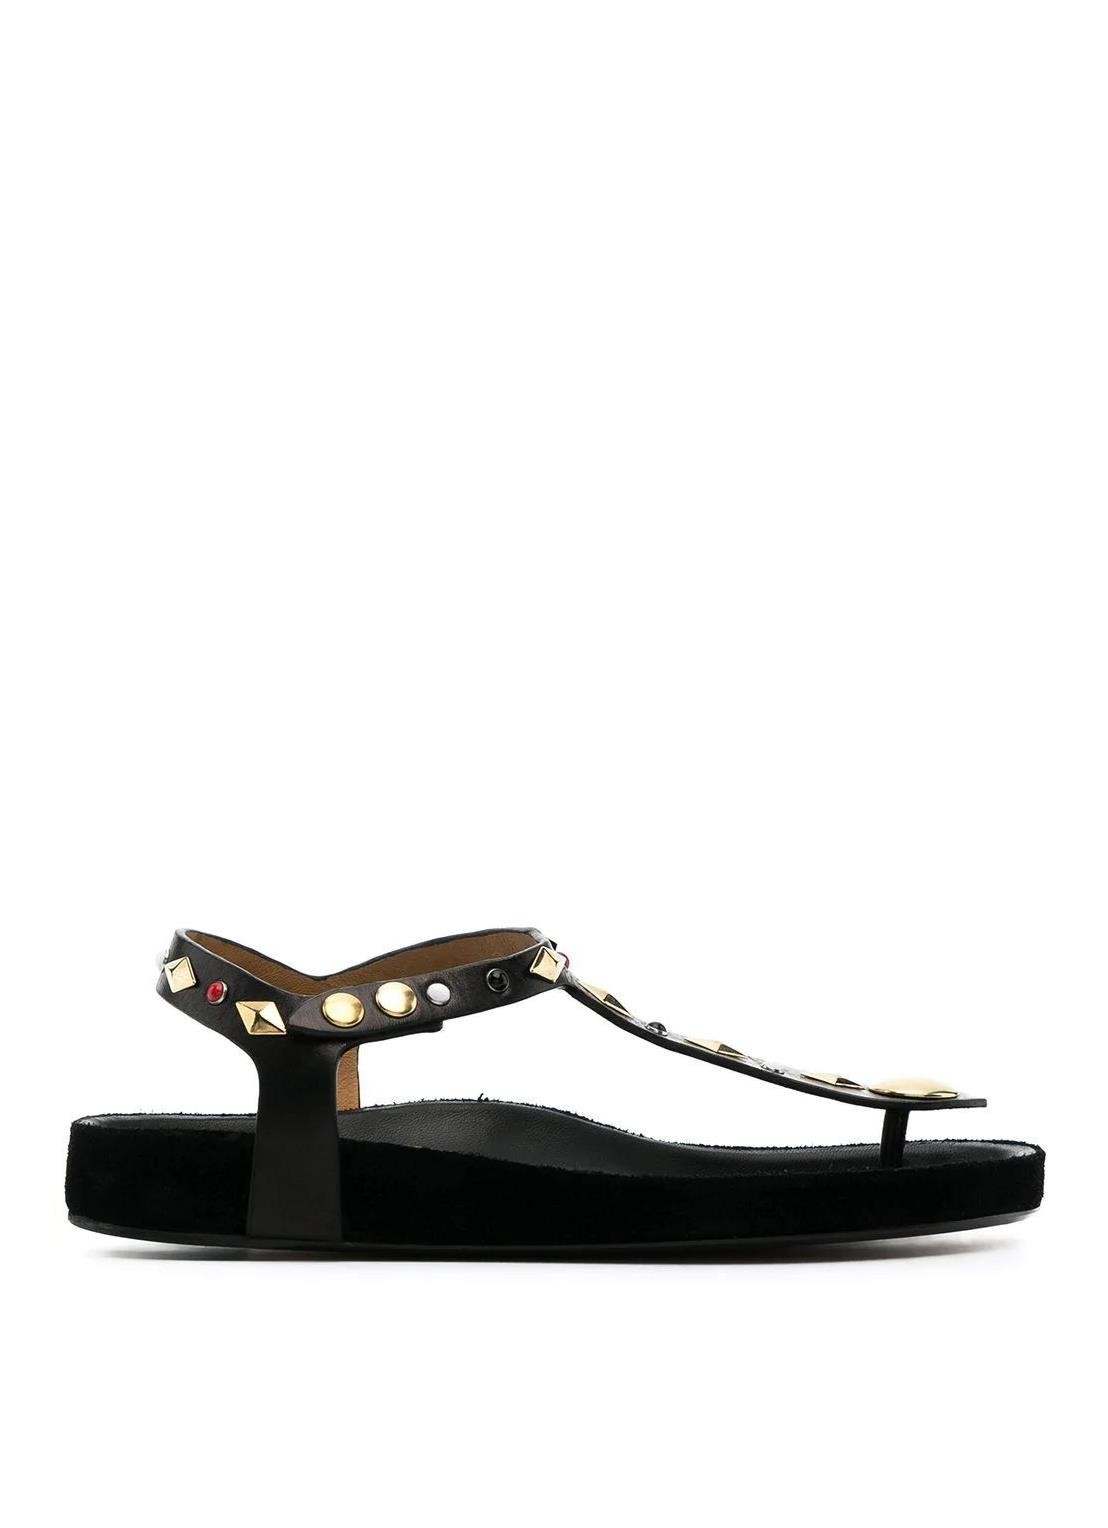 ENORE SANDALS